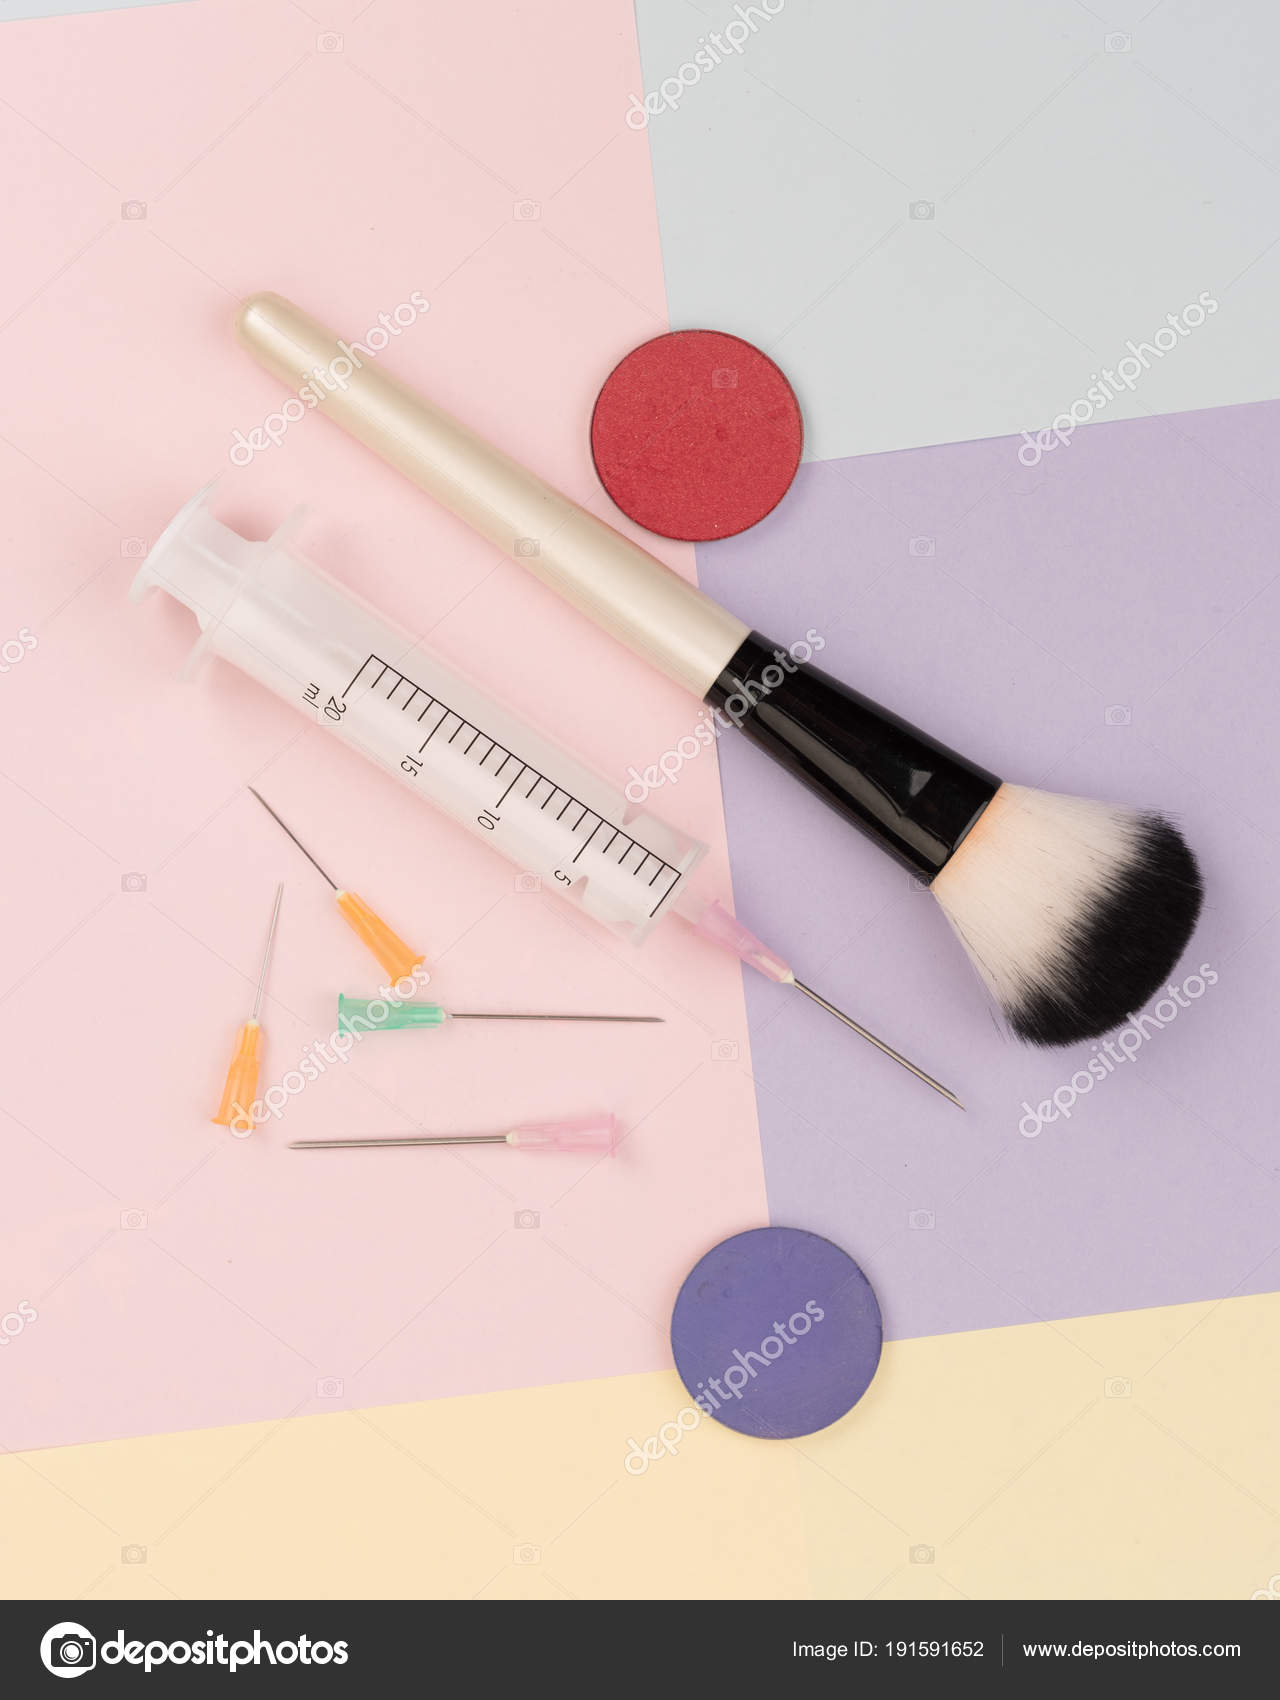 Cosmetic Surgery Makeup Makeup Brushes Syringes Colorful Backgrounds– stock image